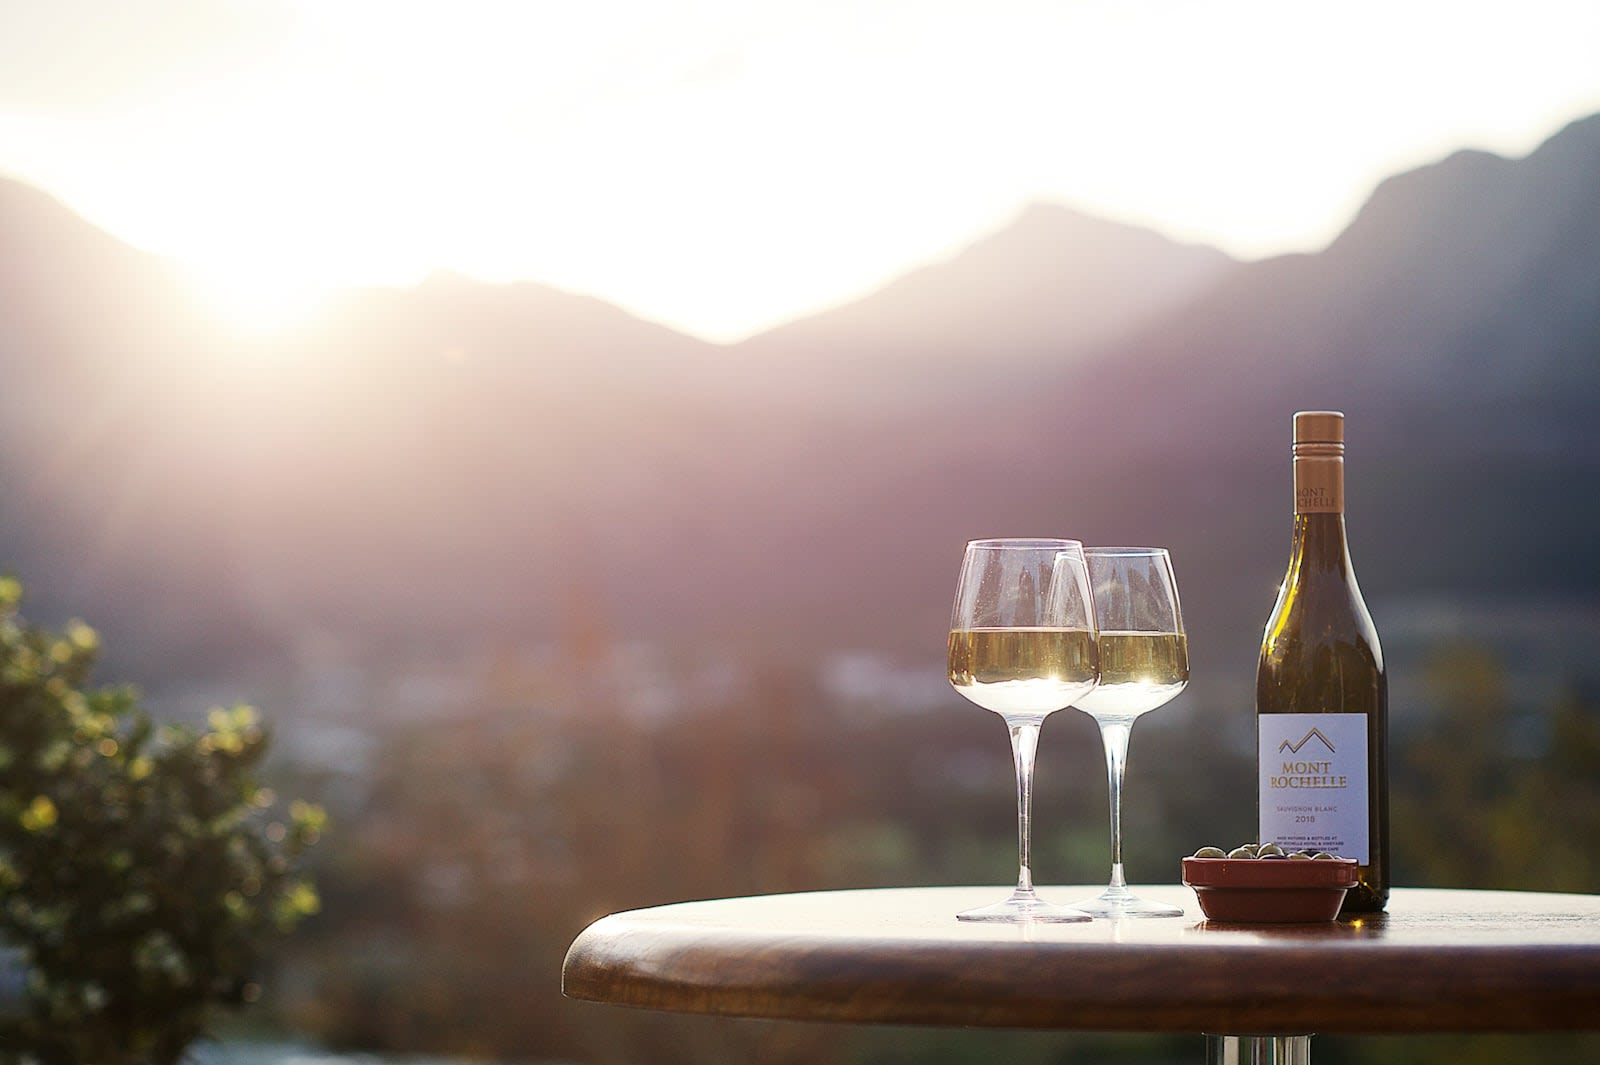 A bottle of white wine and two glasses laid on a cafe style table with a blurred out mountainous landscape in background